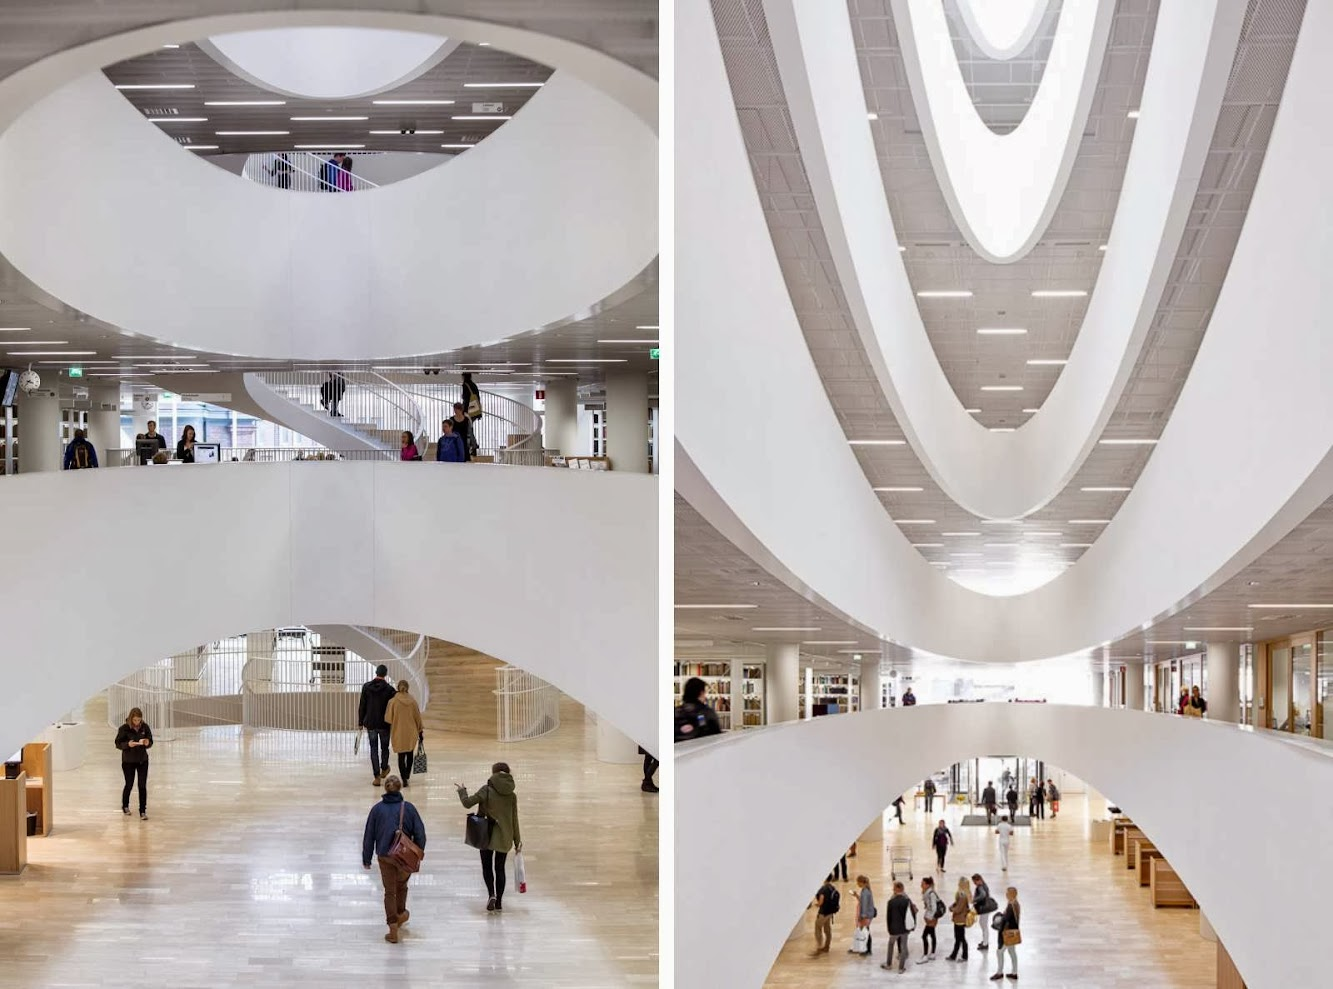 Helsinki University Main Library by Anttinen Oiva Architects